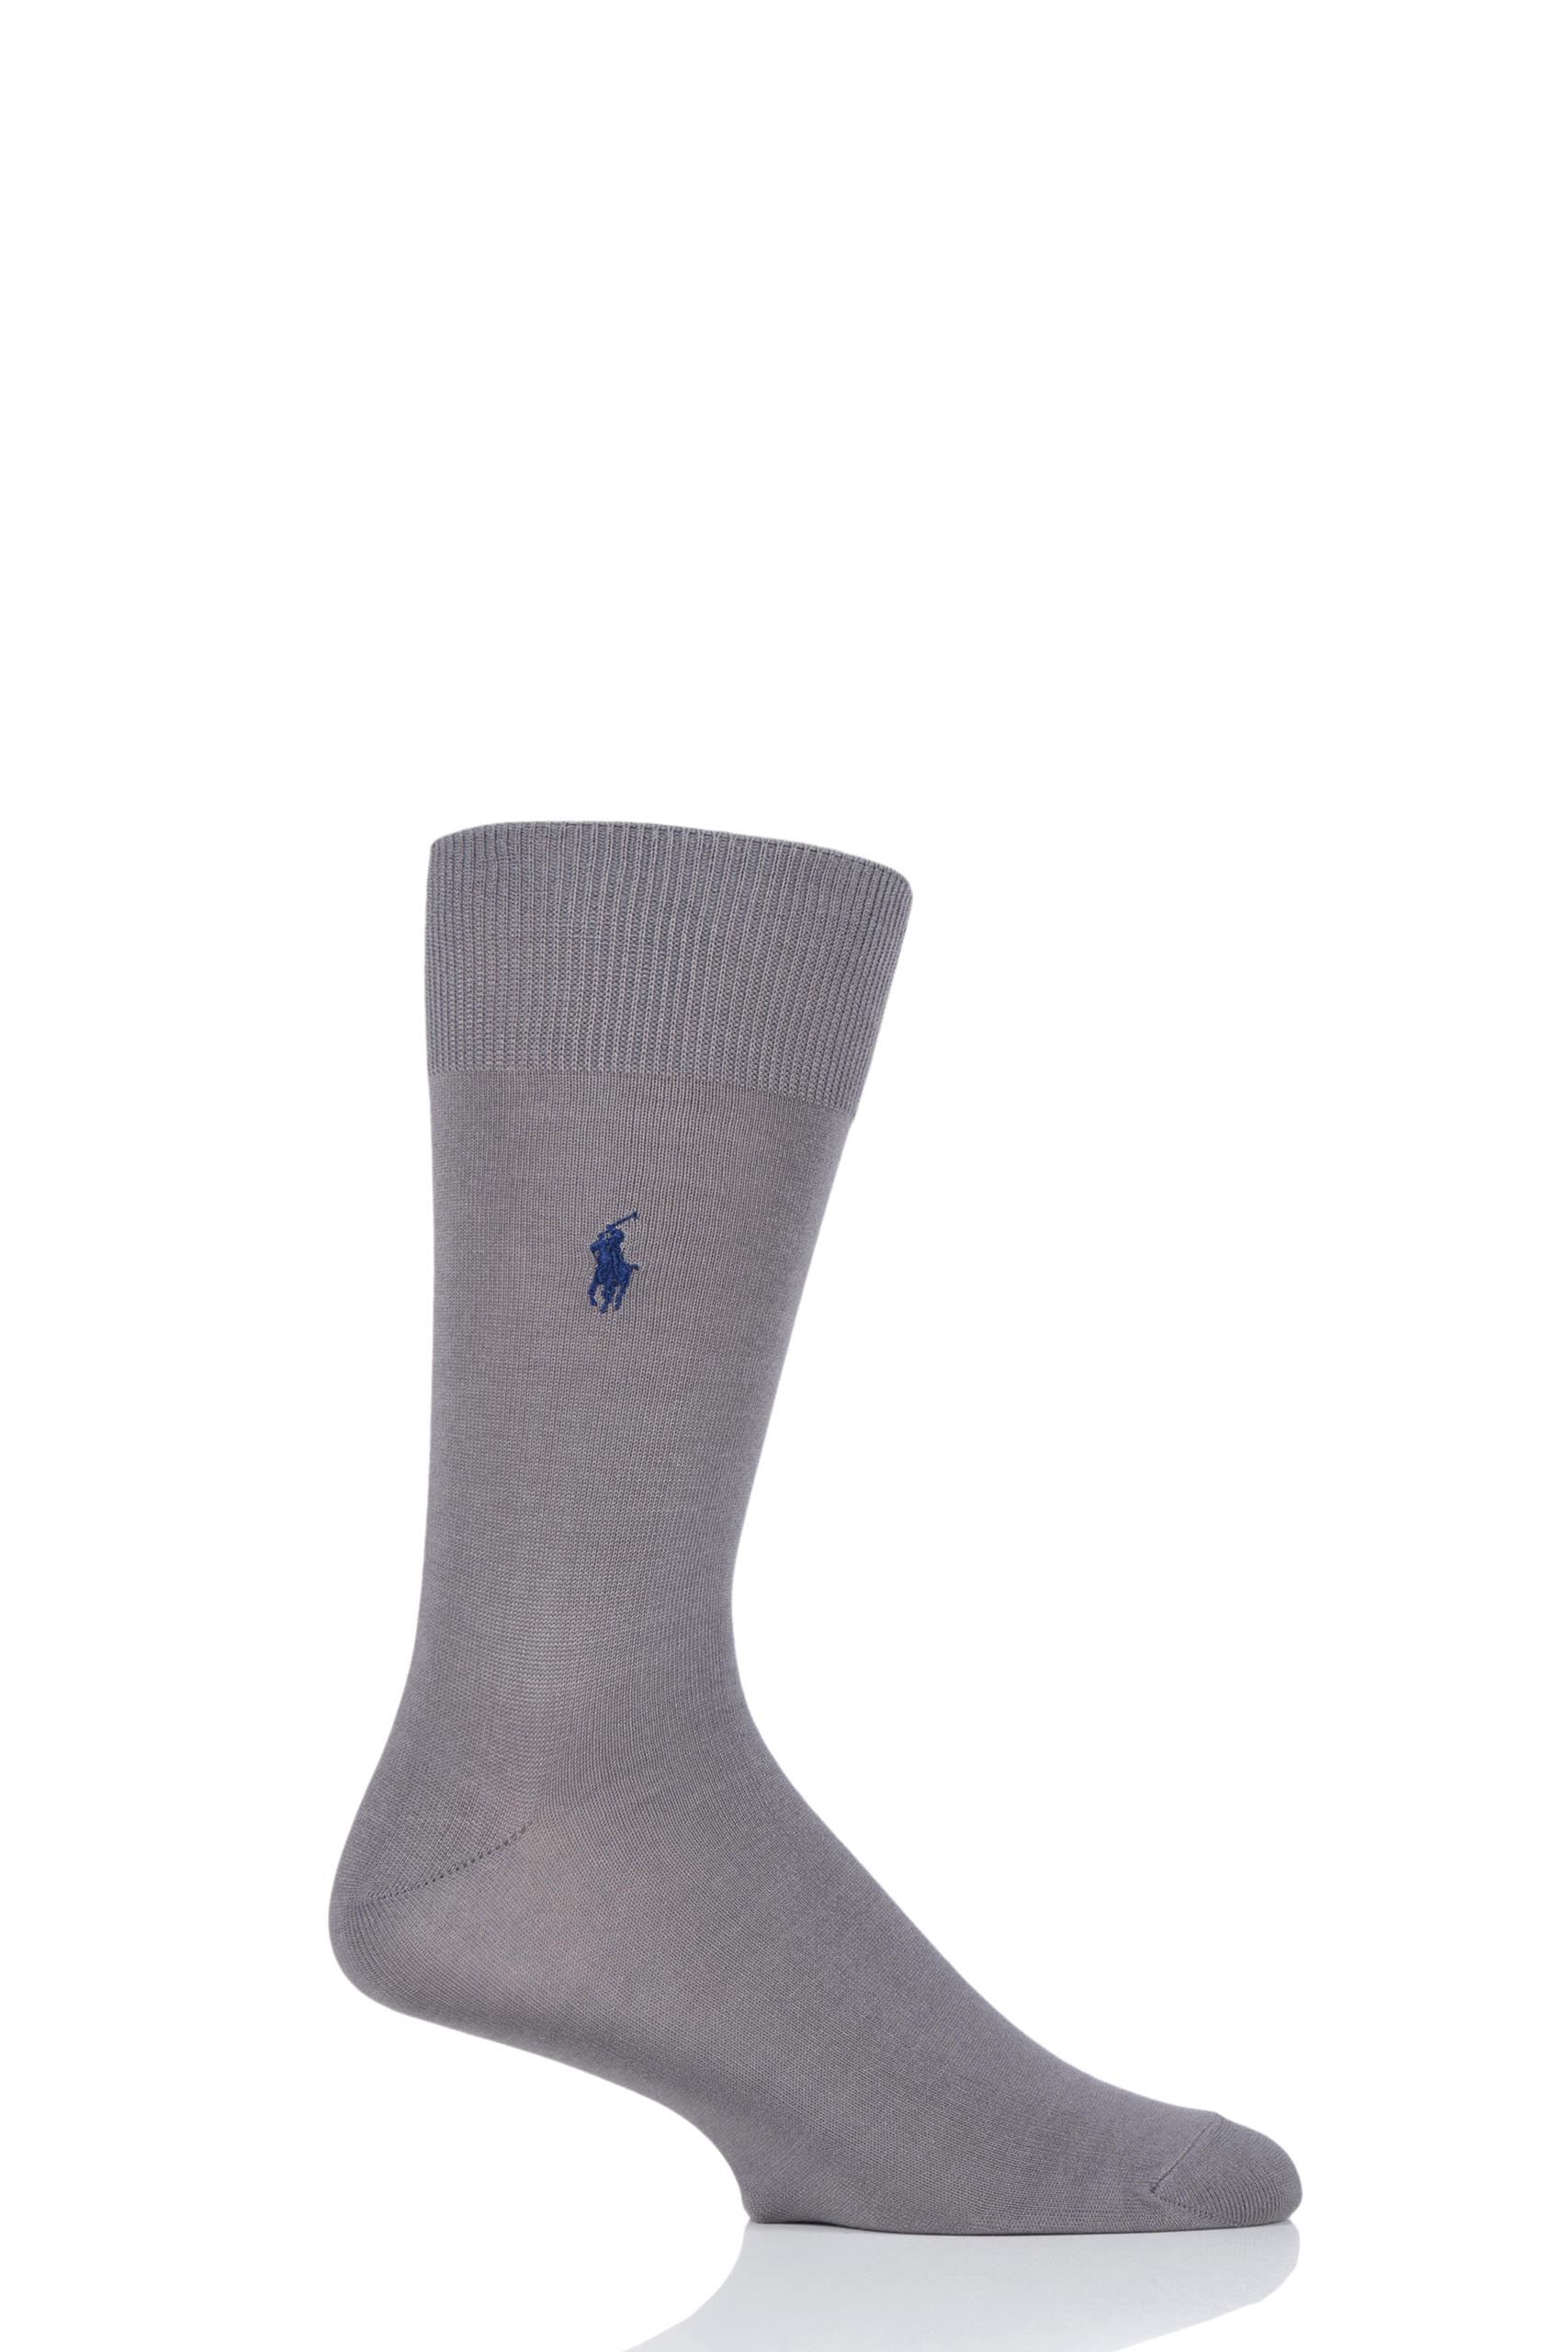 Image of 1 Pair Pewter Embroidered Crew Cotton Socks Men's 5-8 Mens - Ralph Lauren